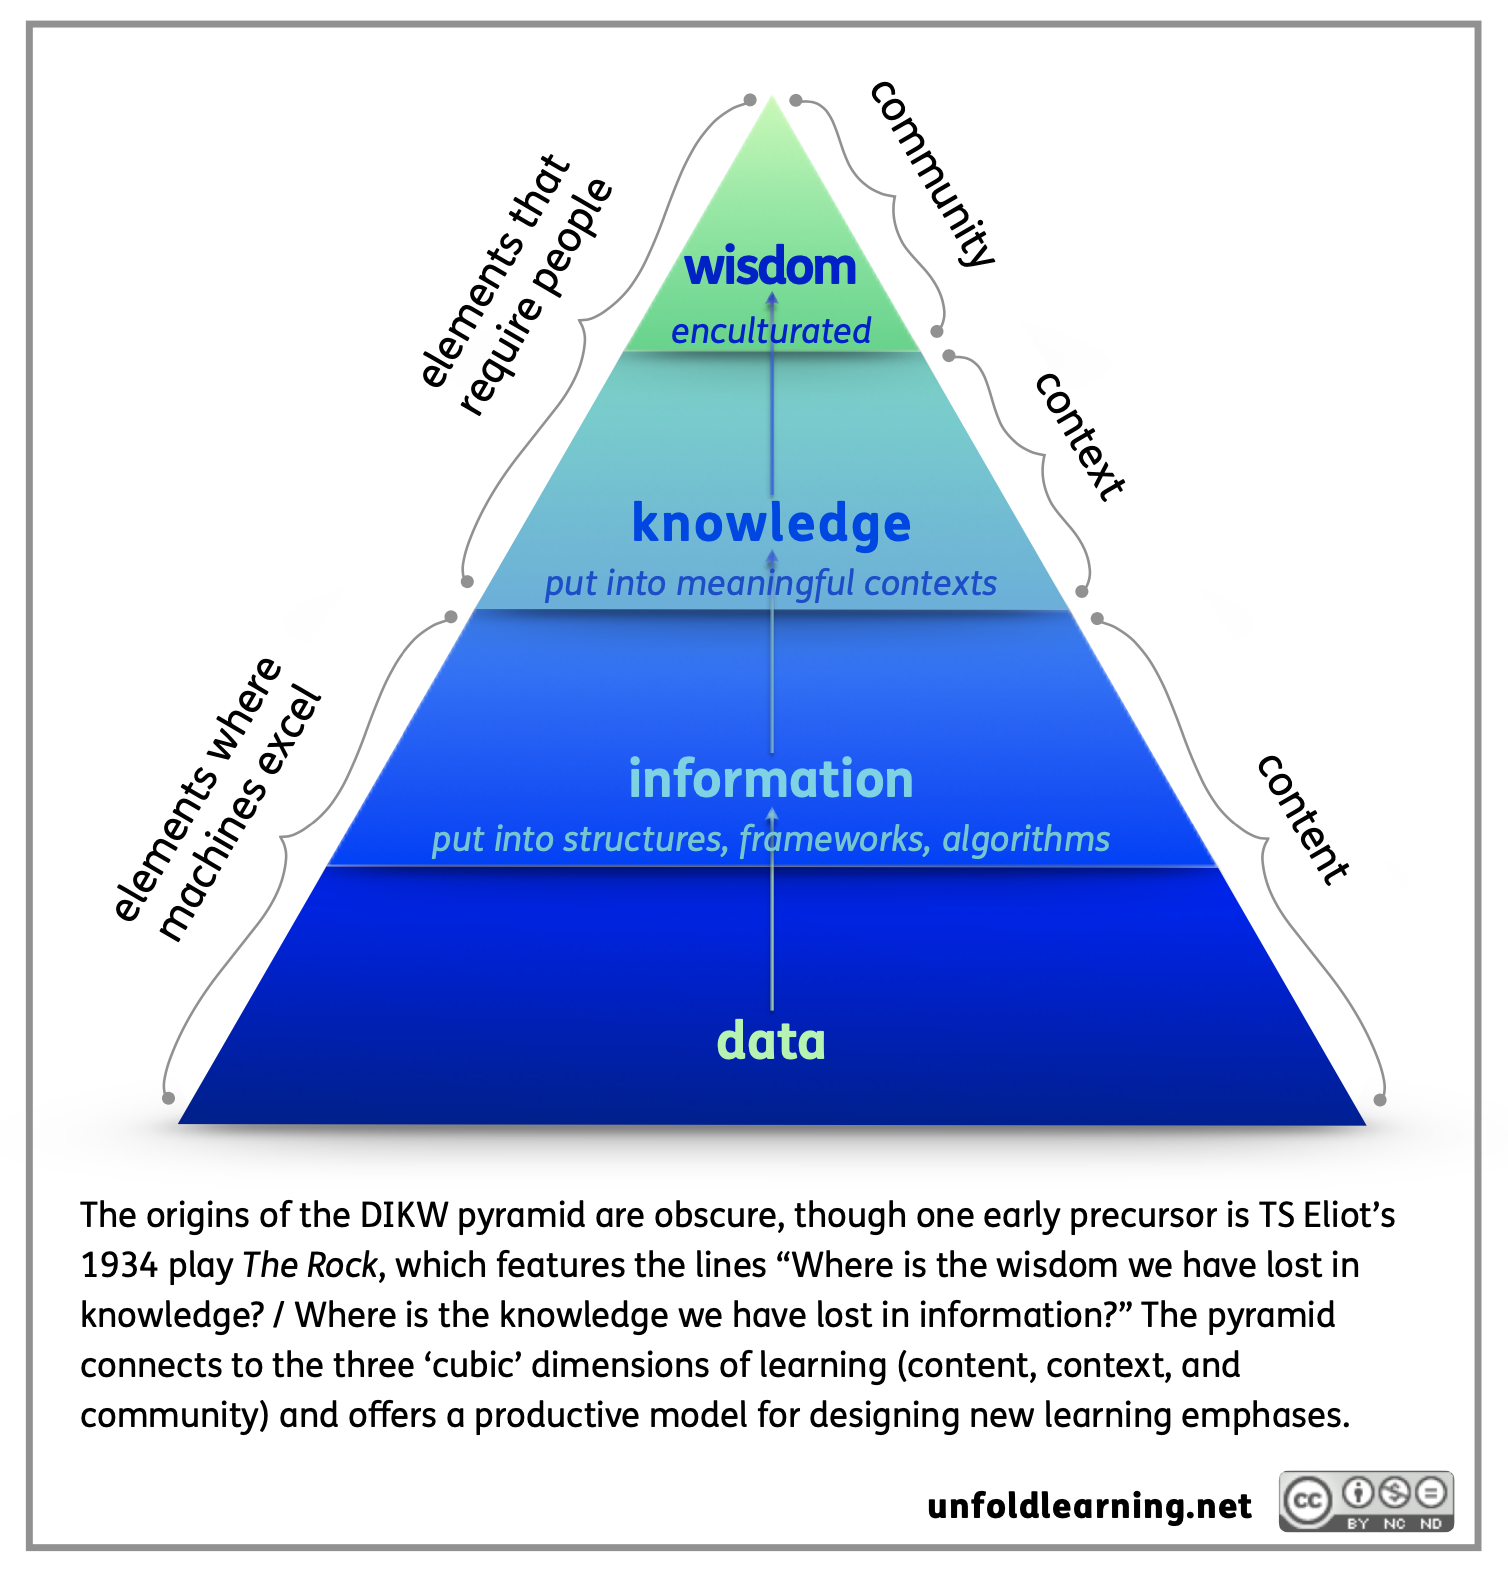 This image shows the DIKW pyramid. At the bottom level is data, followed by information and knowledge. Wisdom is the top.